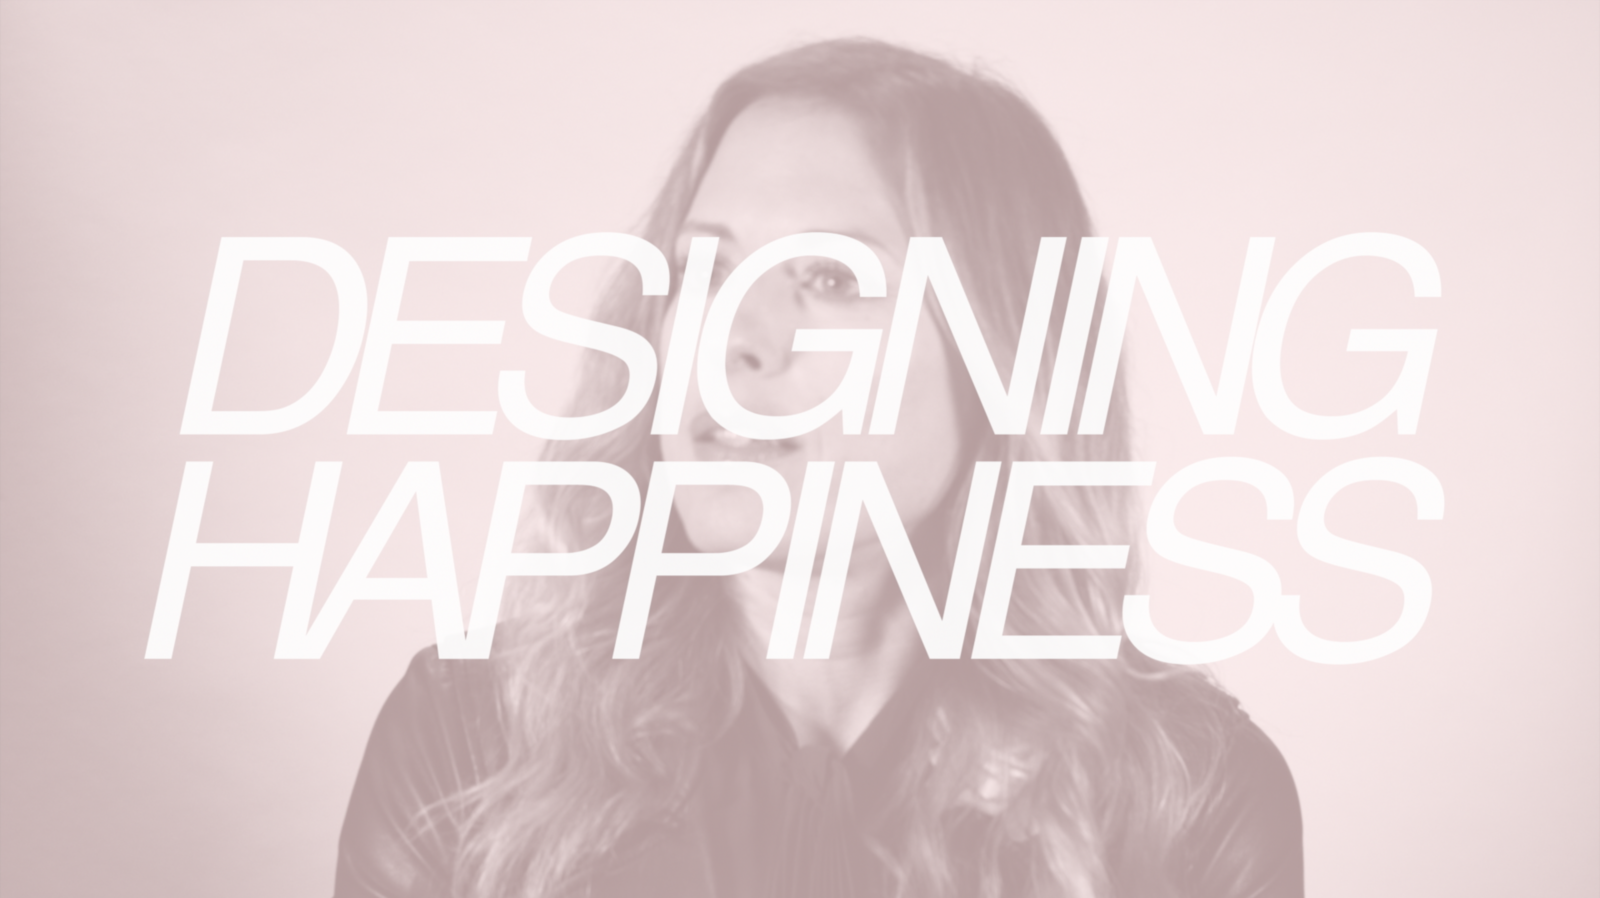 Photo 1 of 1 in Designing Happiness // Nika Zupanc